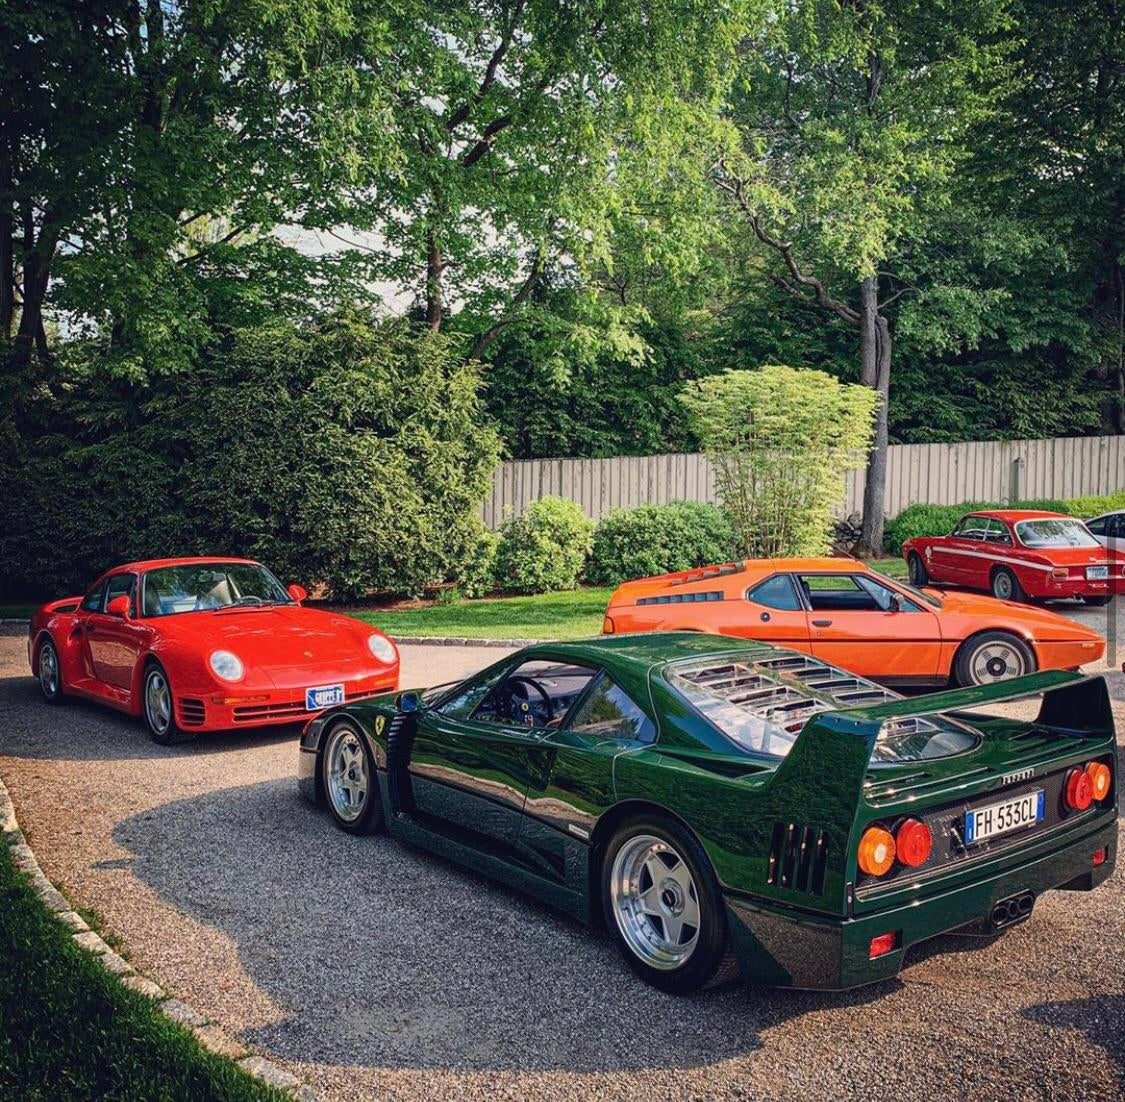 This must be heaven…. F40,959,M1,Alfa Romeo